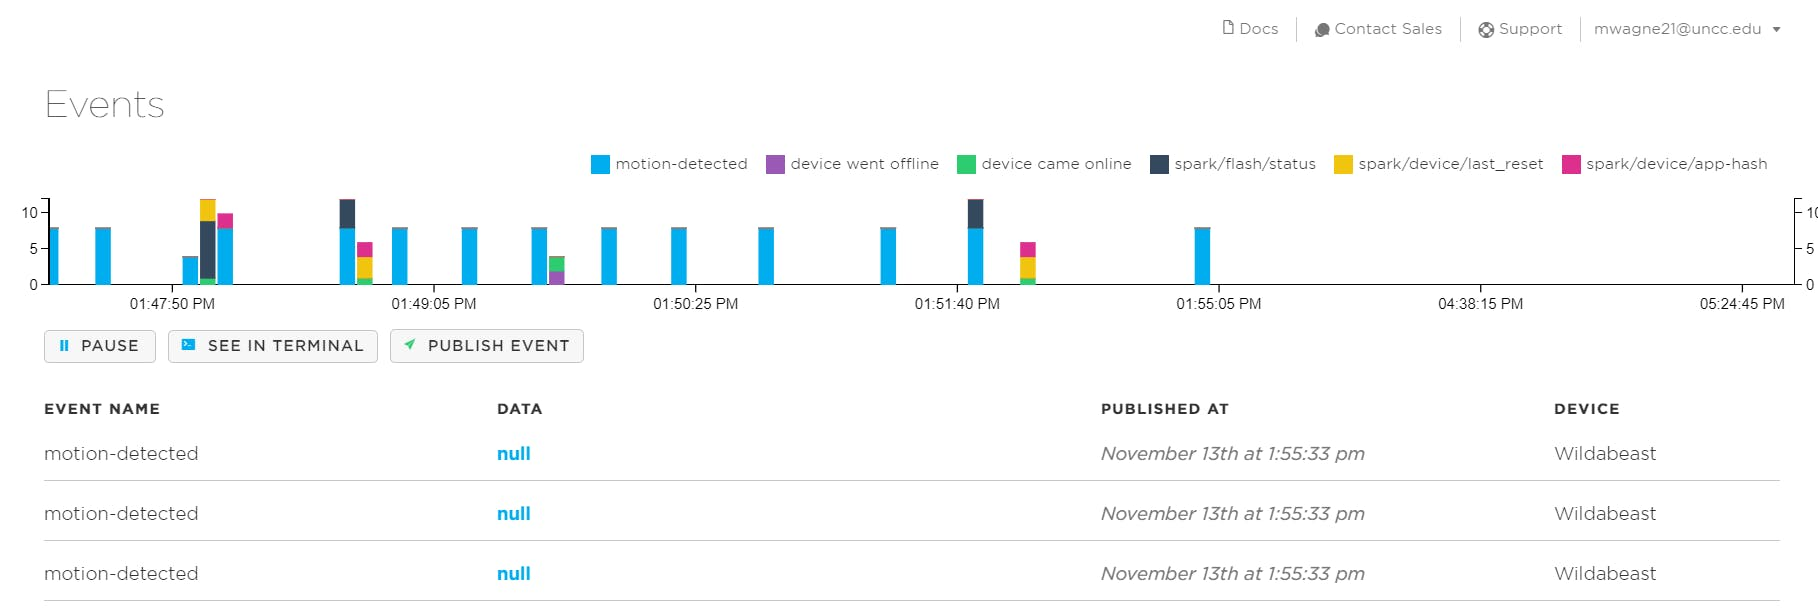 The above data displays multiple test runs of the project to show performance of the motion detector.